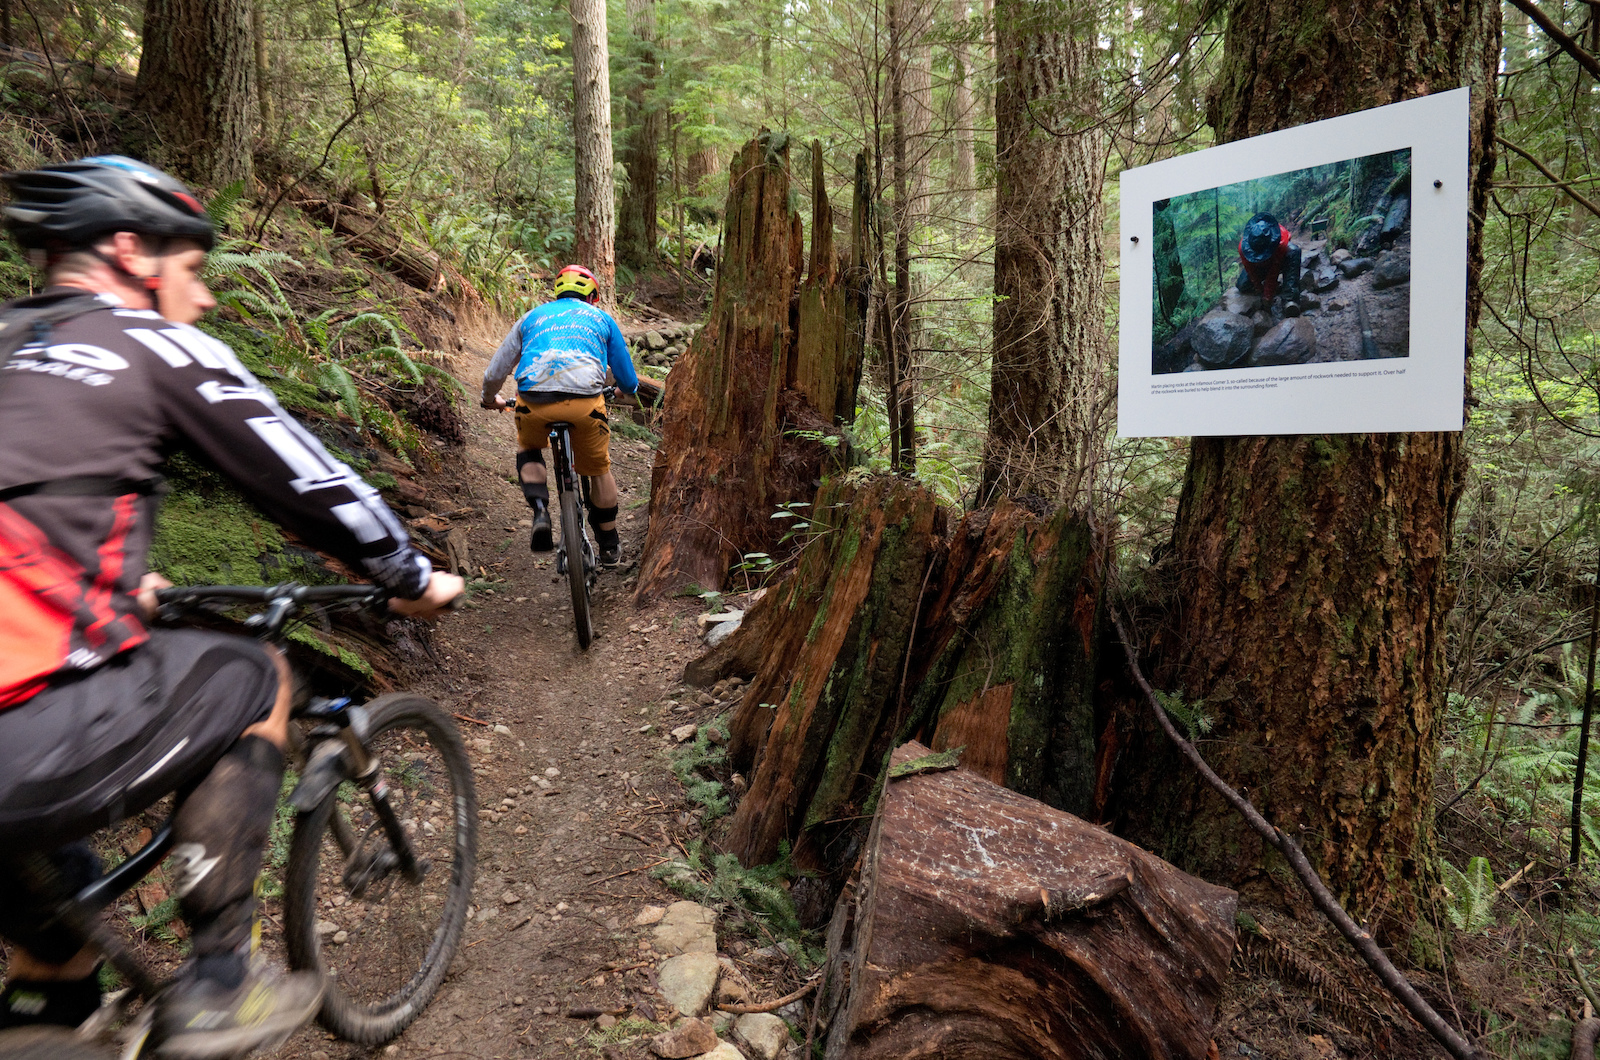 Riders viewing a print of Martin building the rock retaining wall holding up the corner in front of them.